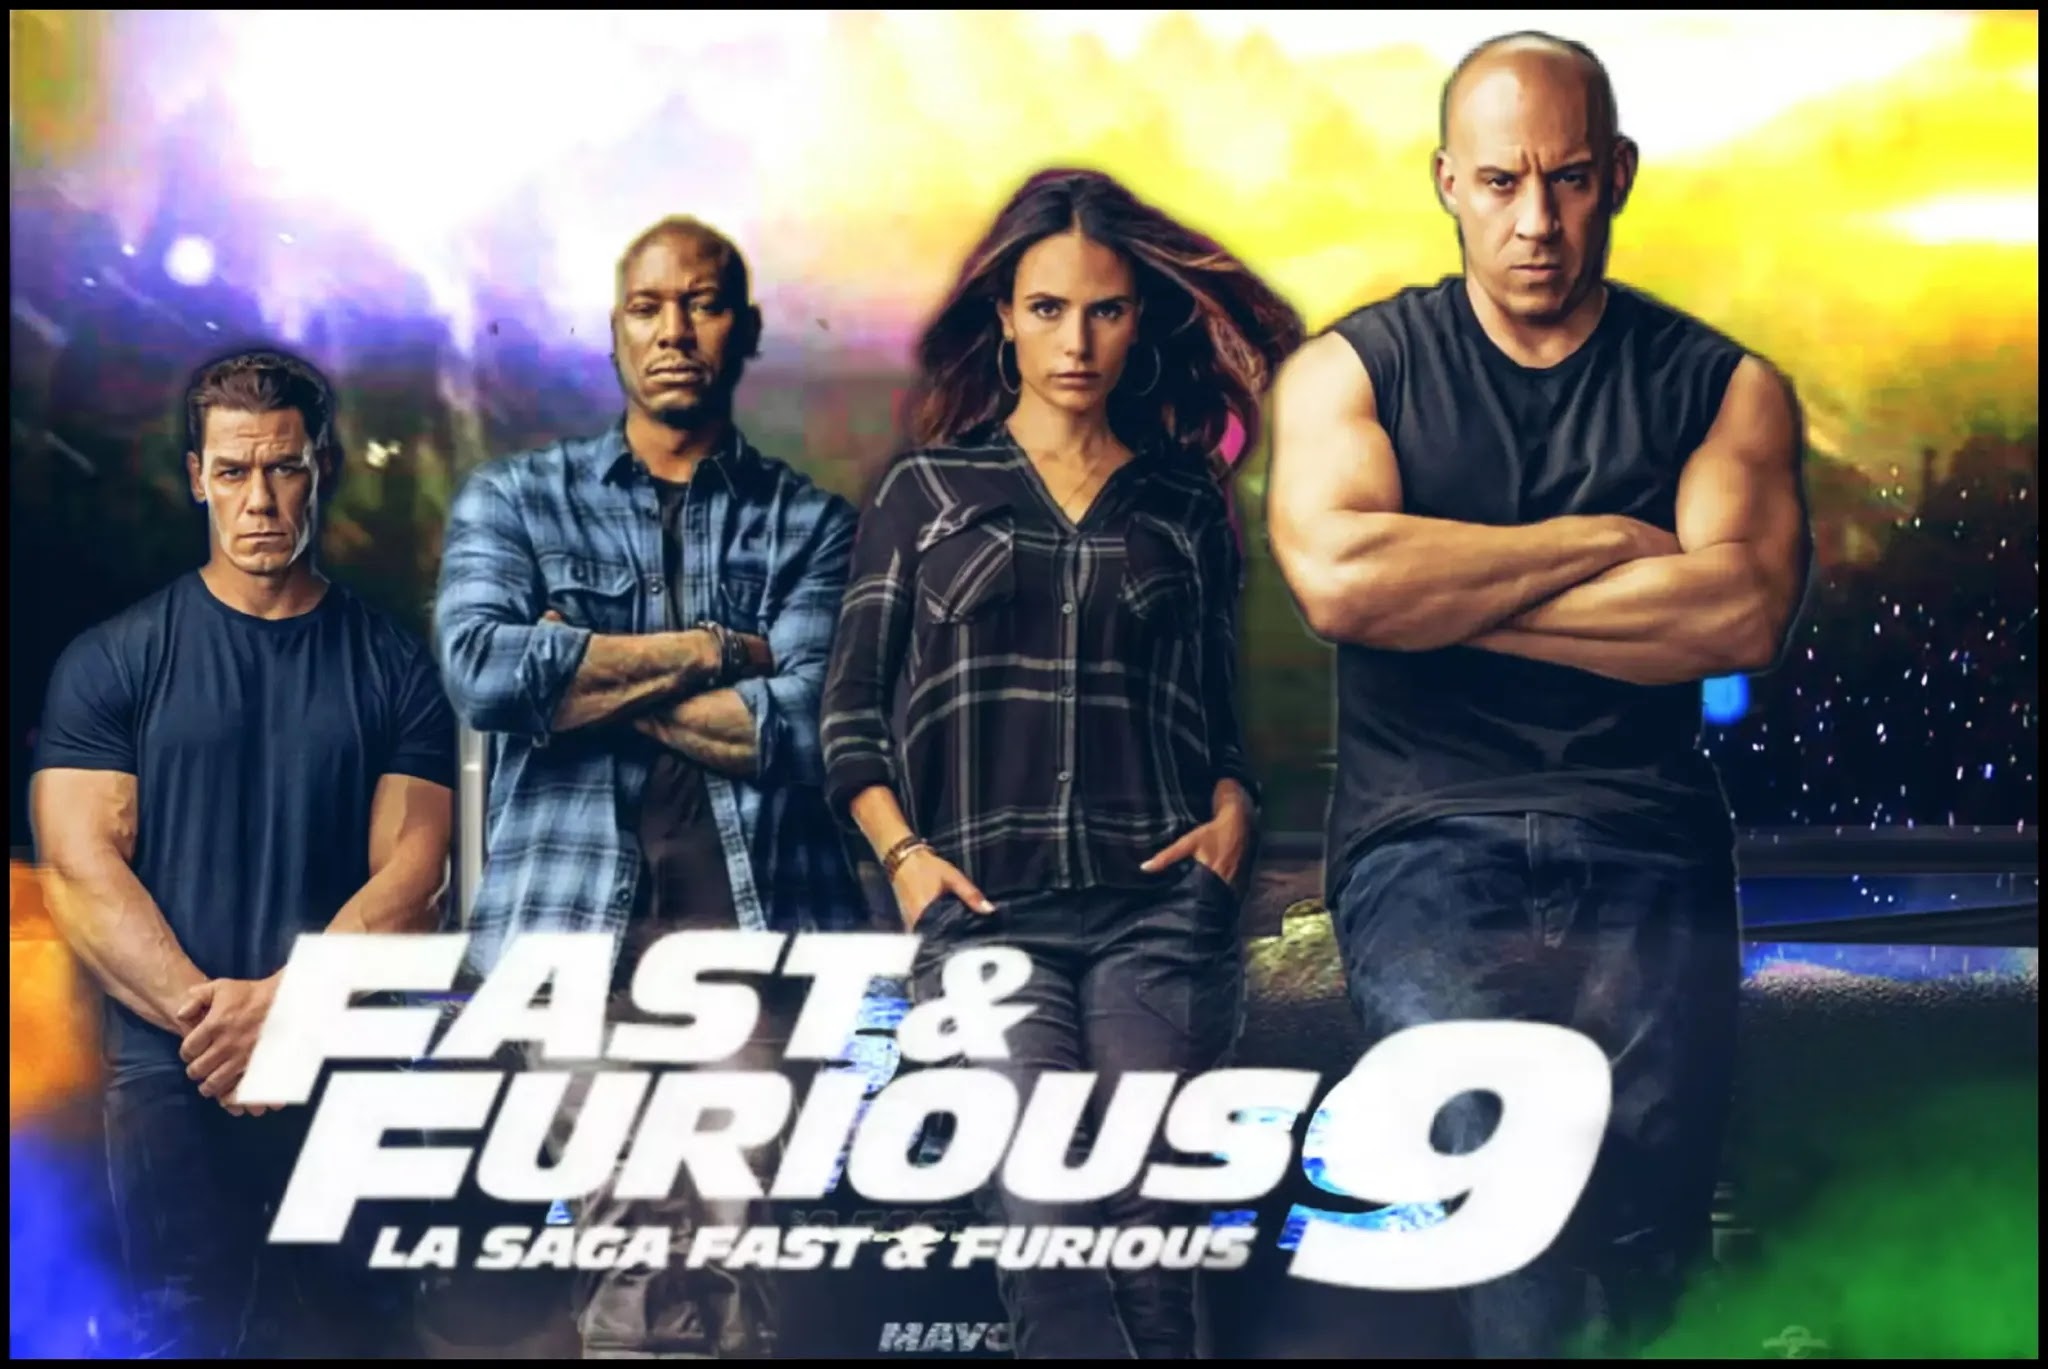 Fast and furious 9 full movie in hindi download 480p | Hollywood movie in hindi